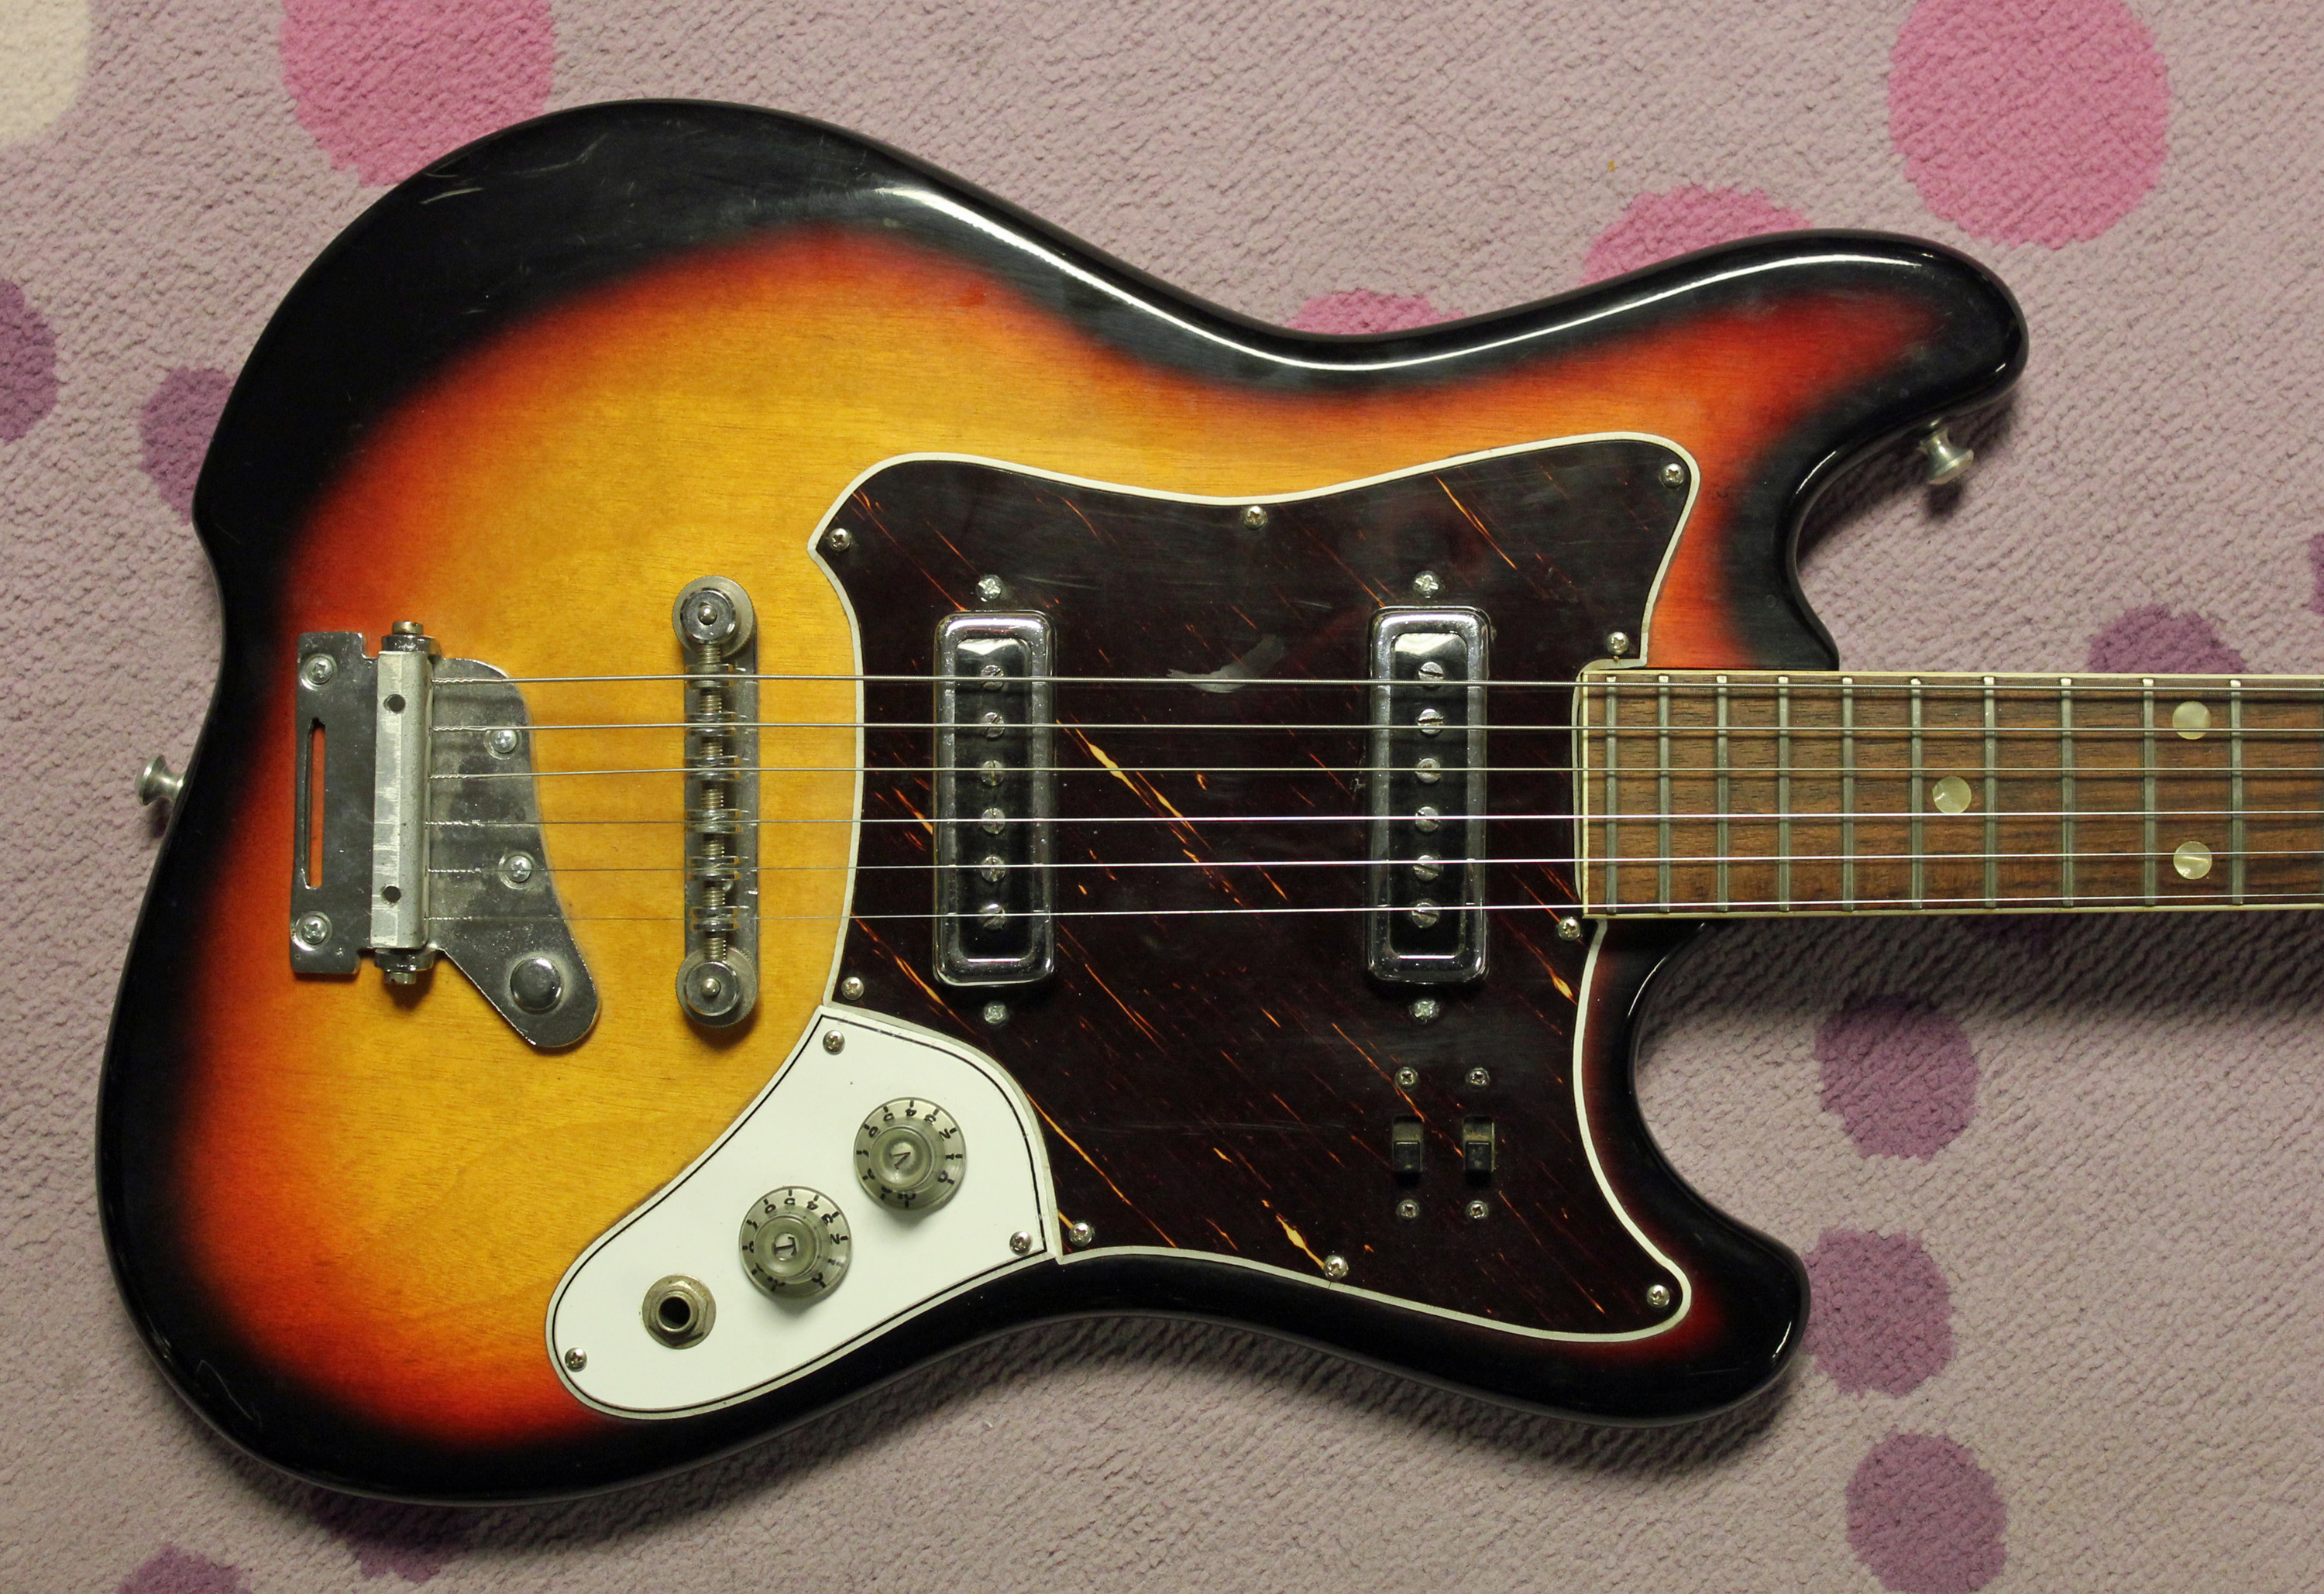 The Record Connection – 1966 Decca Electric Guitar